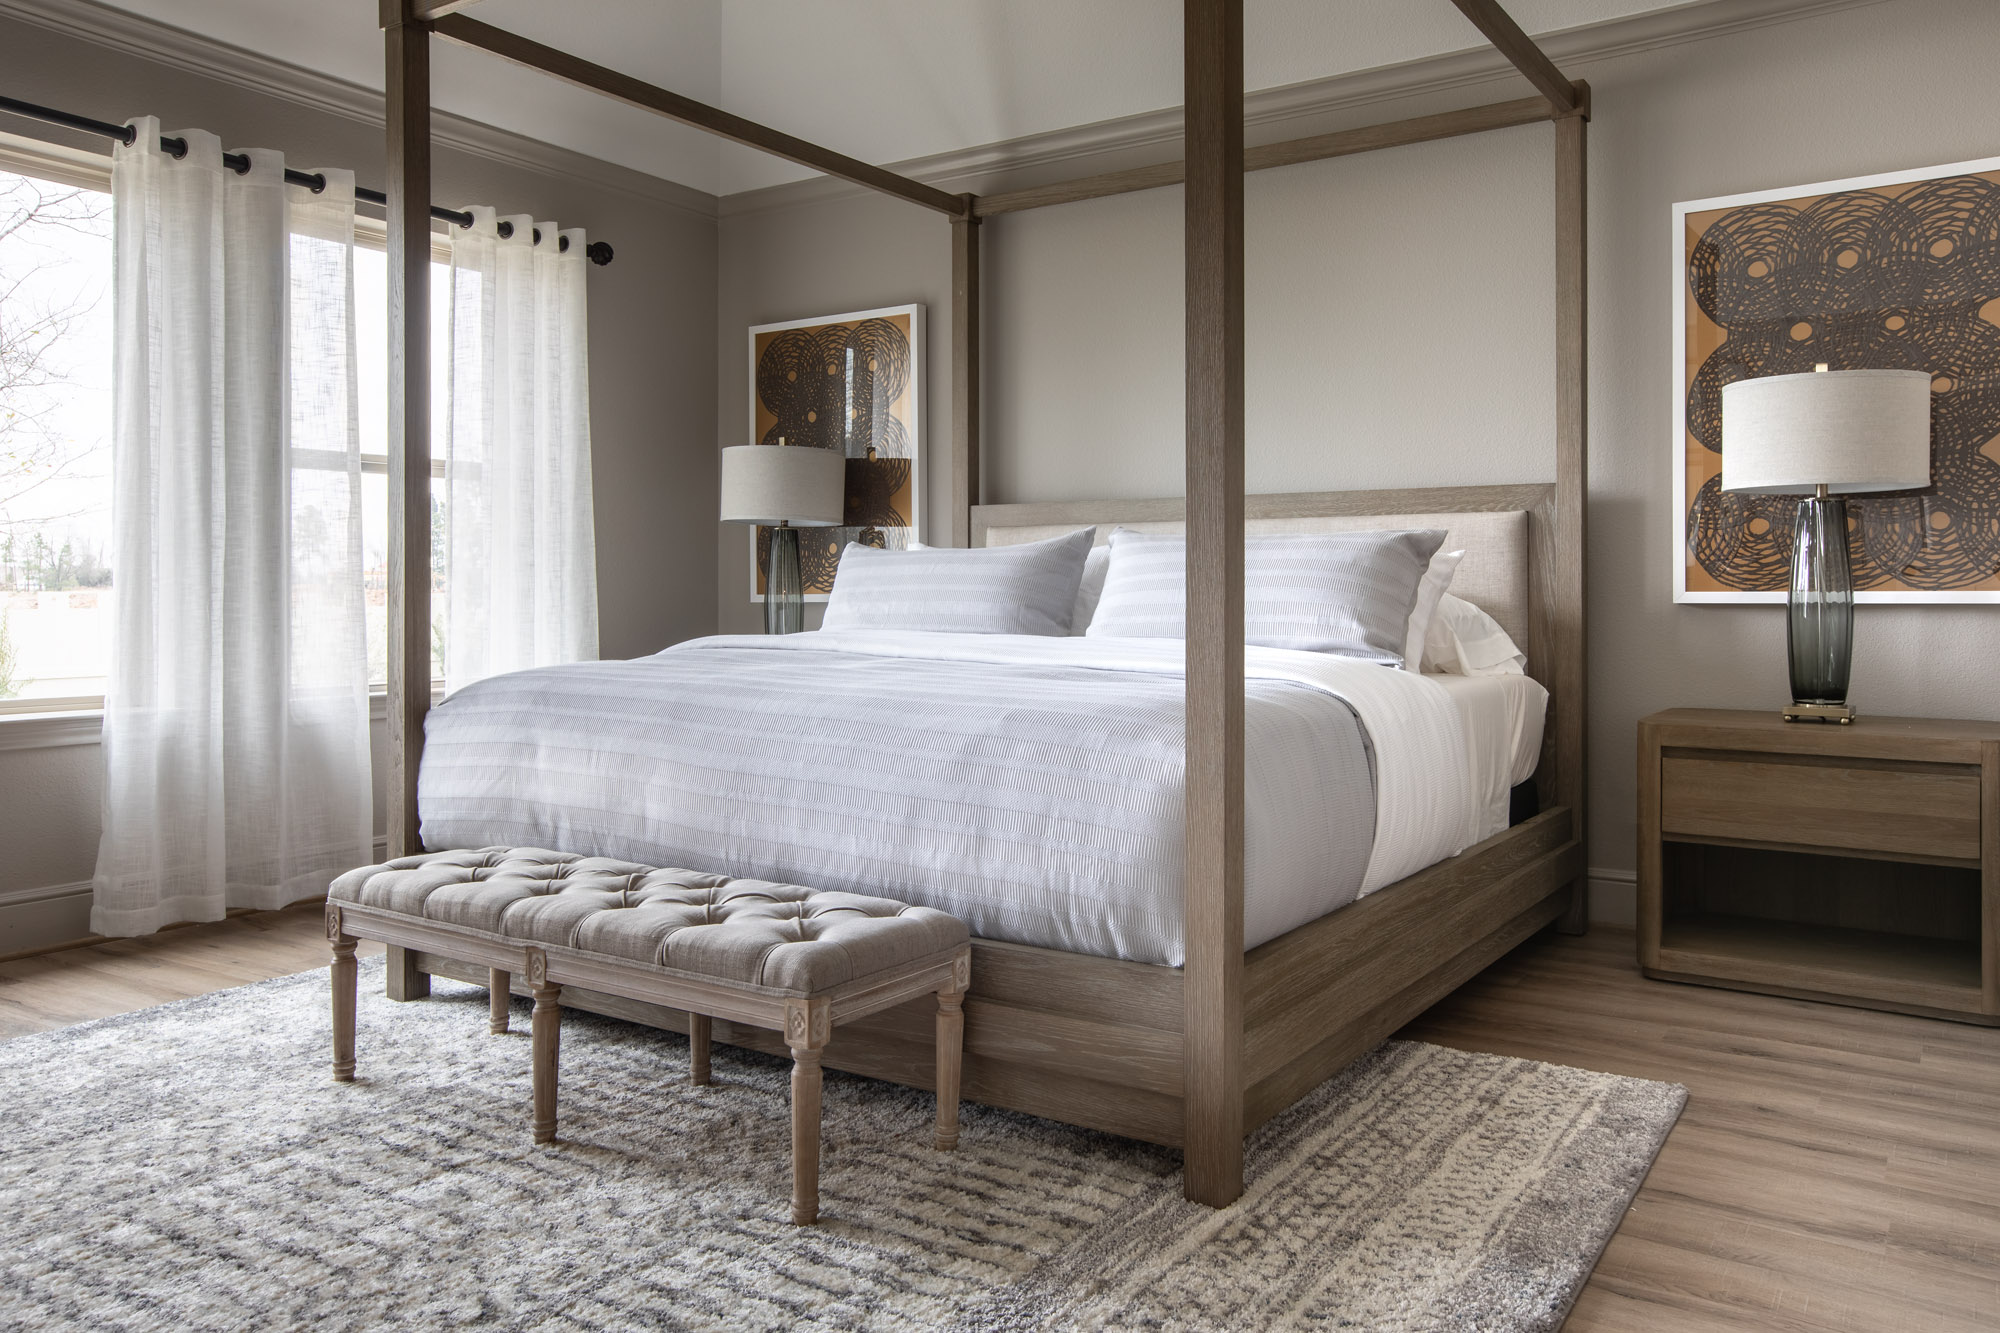 Harper's Preserve master bedroom with large wood four poster bed, light wood furniture, and patterned grey rug